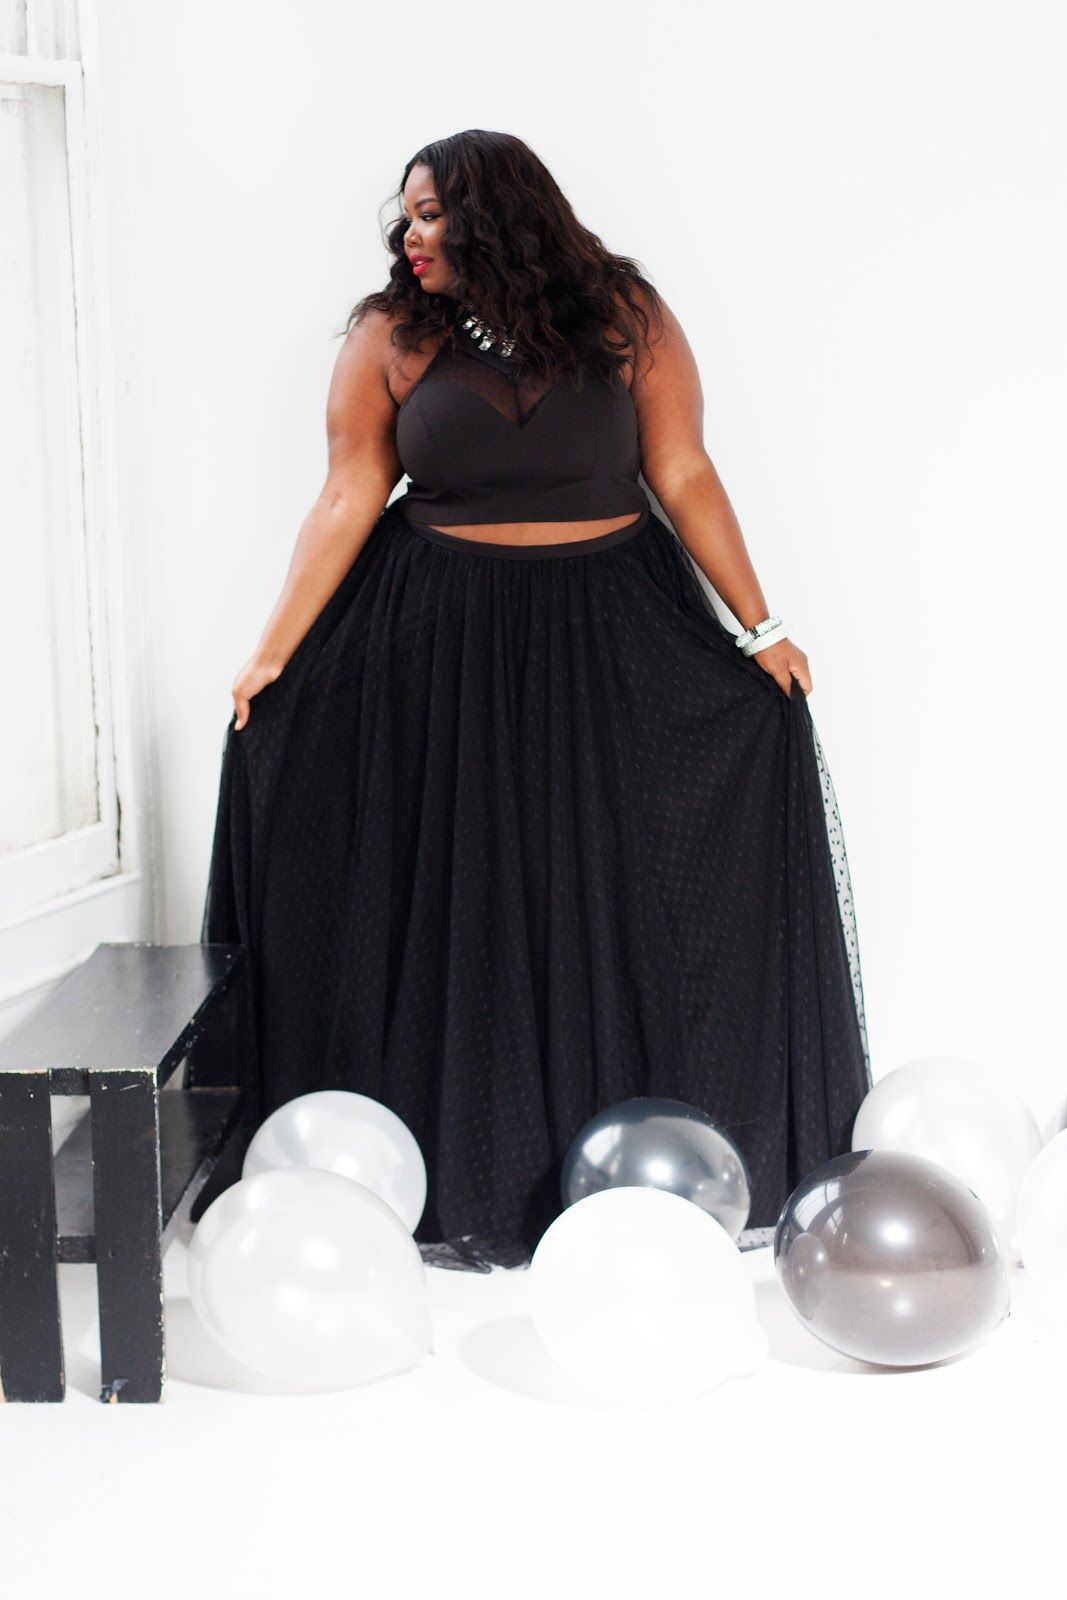 Happy Birthday TOOOOOO MEEEEEE! plus size fashion